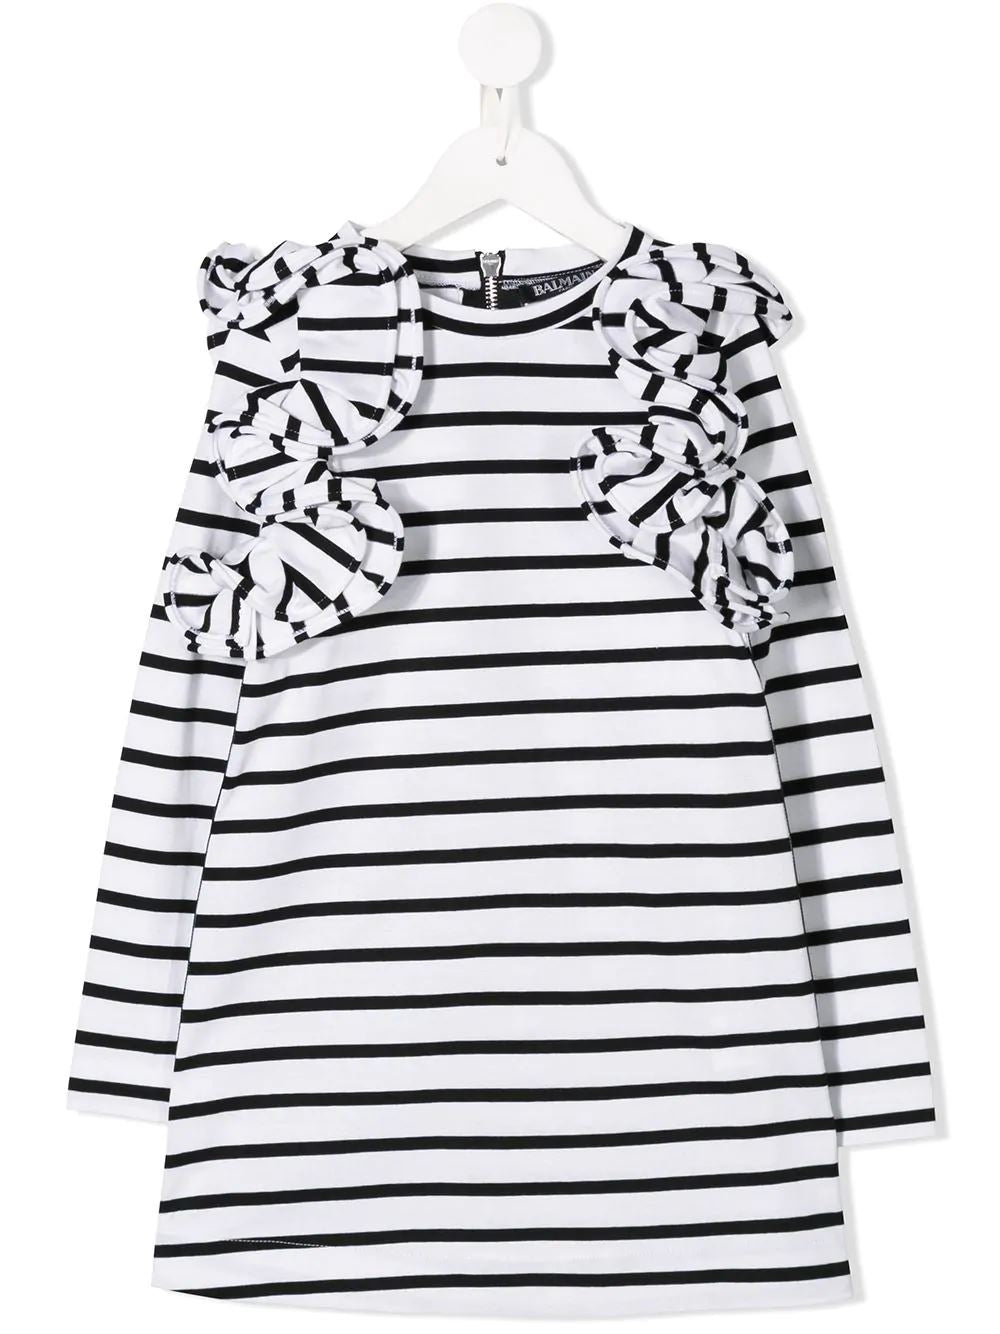 BALMAIN KIDS striped dress white/black - Maison De Fashion